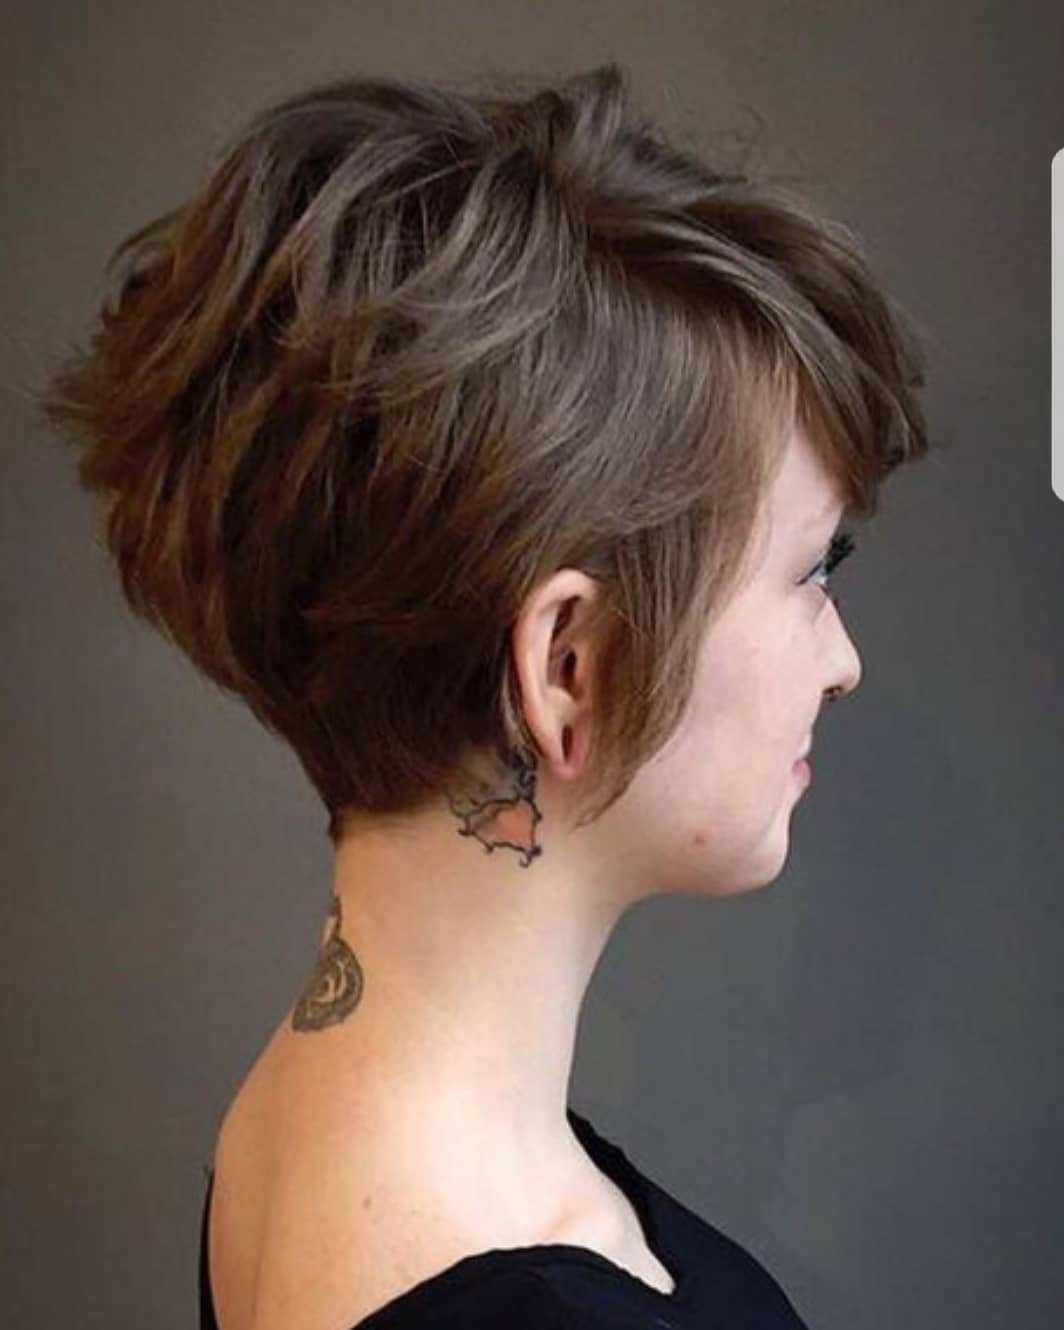 Free 10 Flattering Short Straight Hairstyles 2019 Wallpaper